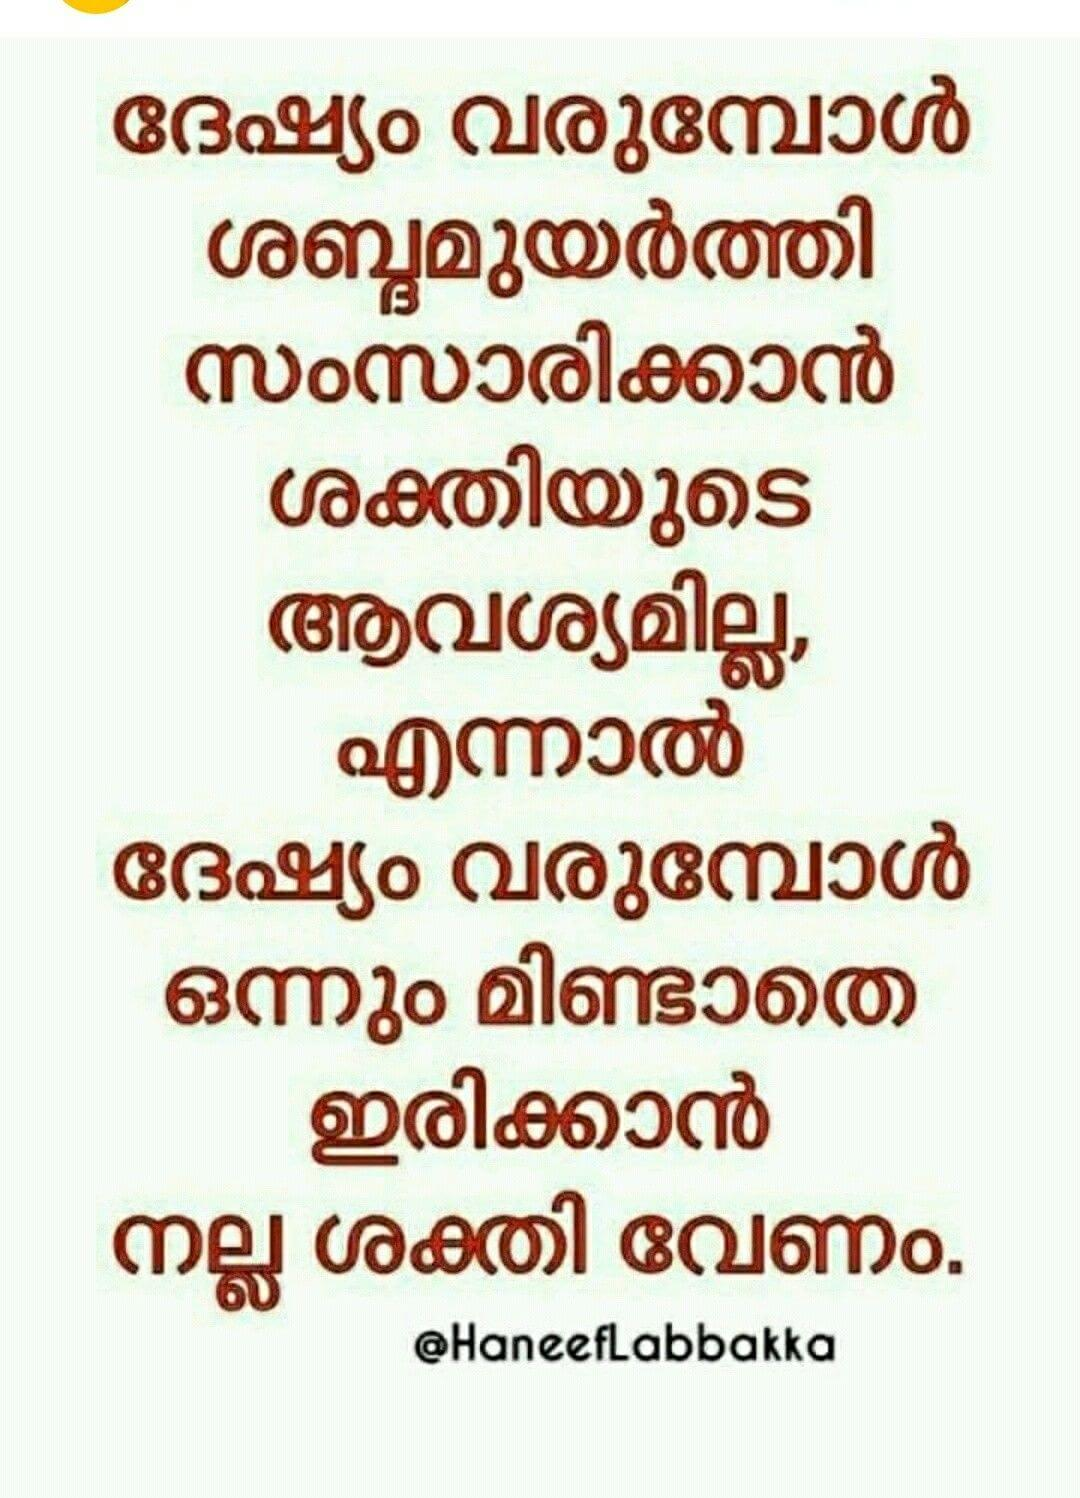 lovers images with quotes in malayalam